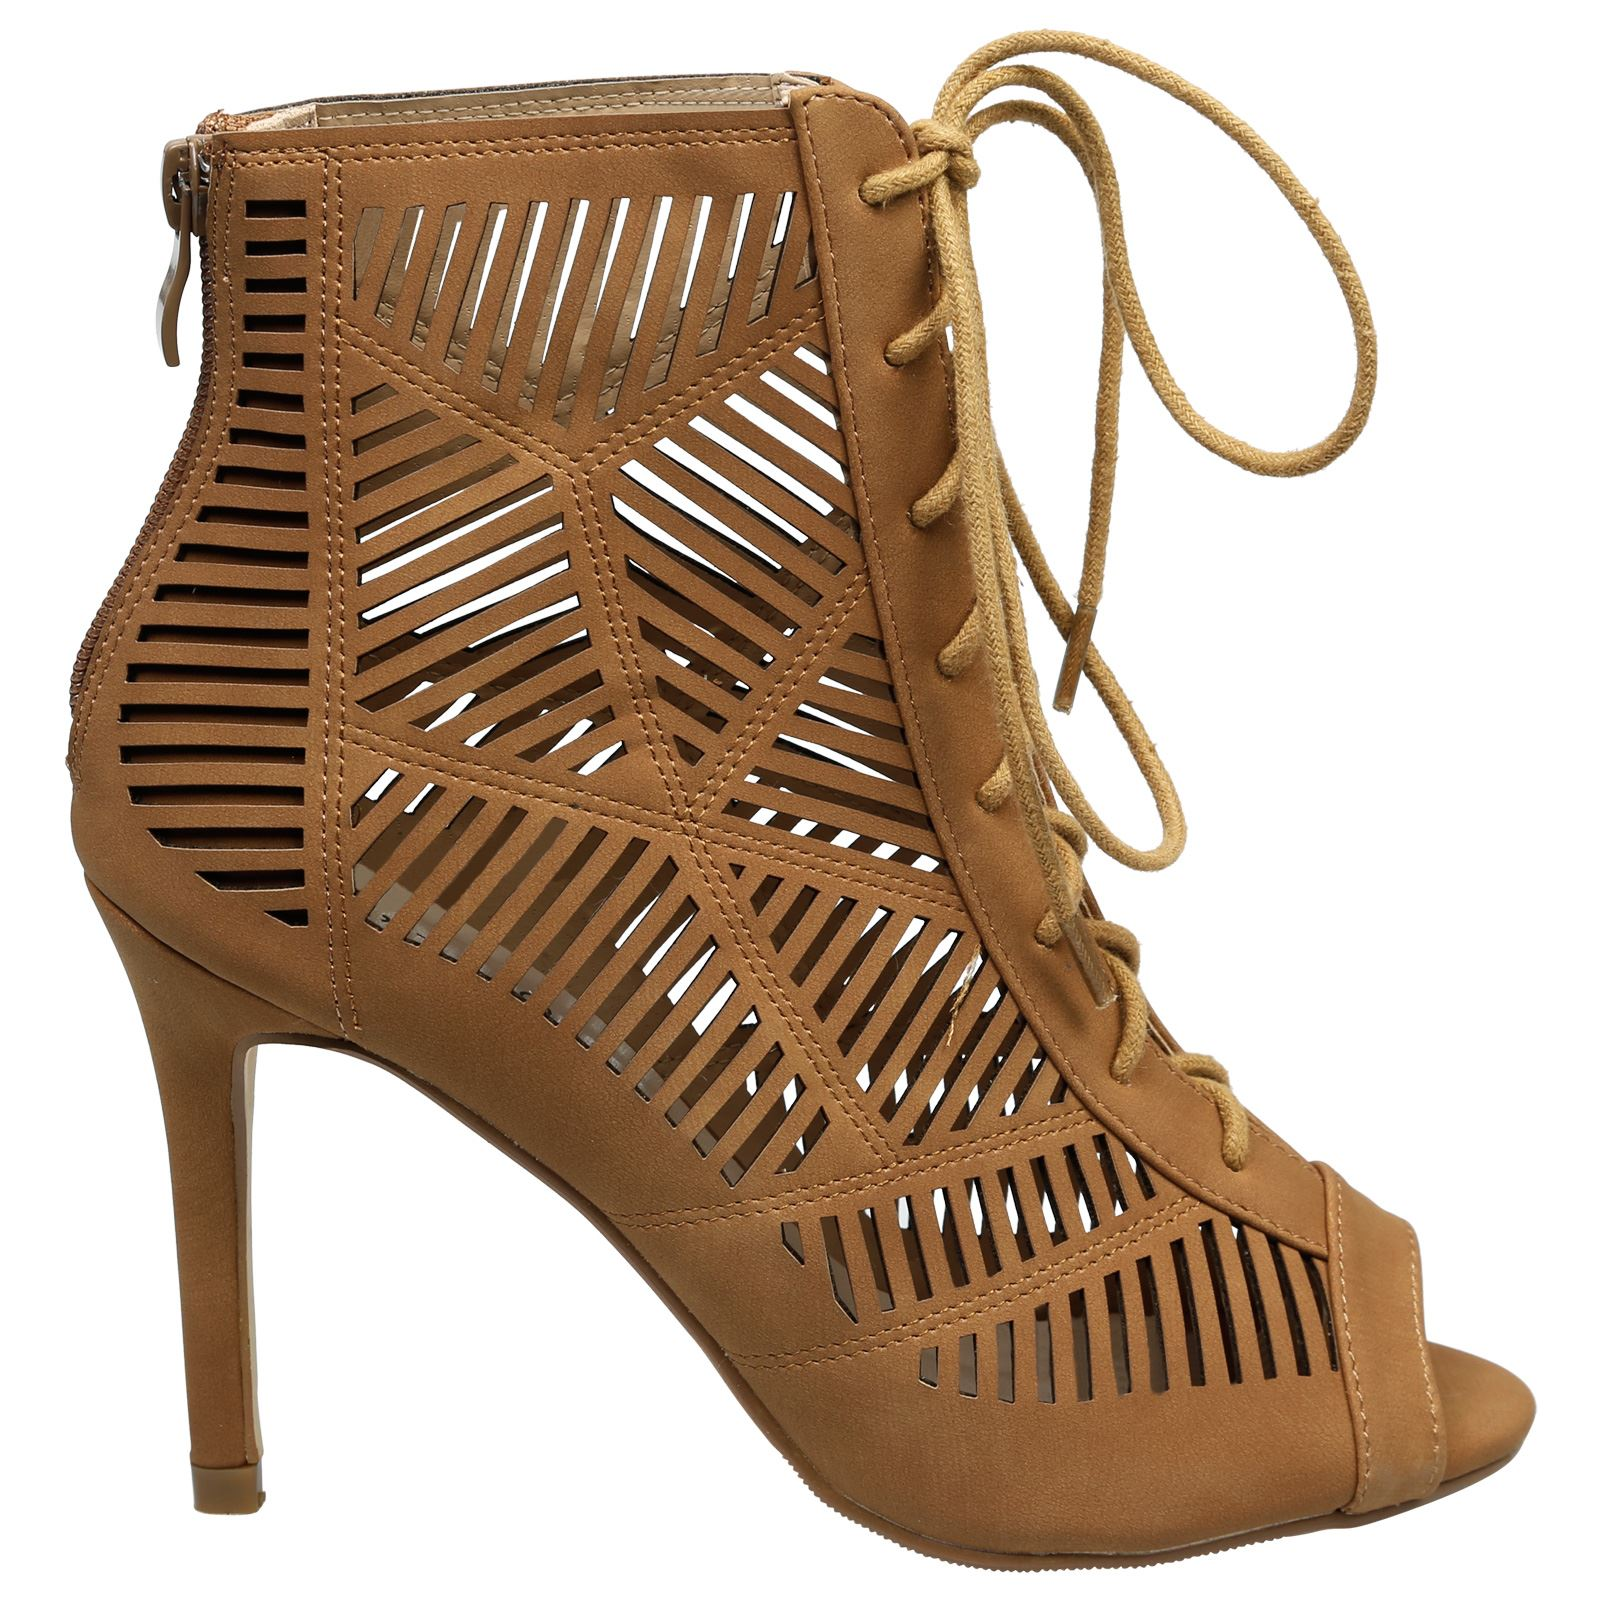 Anais-Womens-High-Heels-Stilettos-Lace-Up-Peep-Toe-Ankle-Boots-Ladies-Shoes-Size